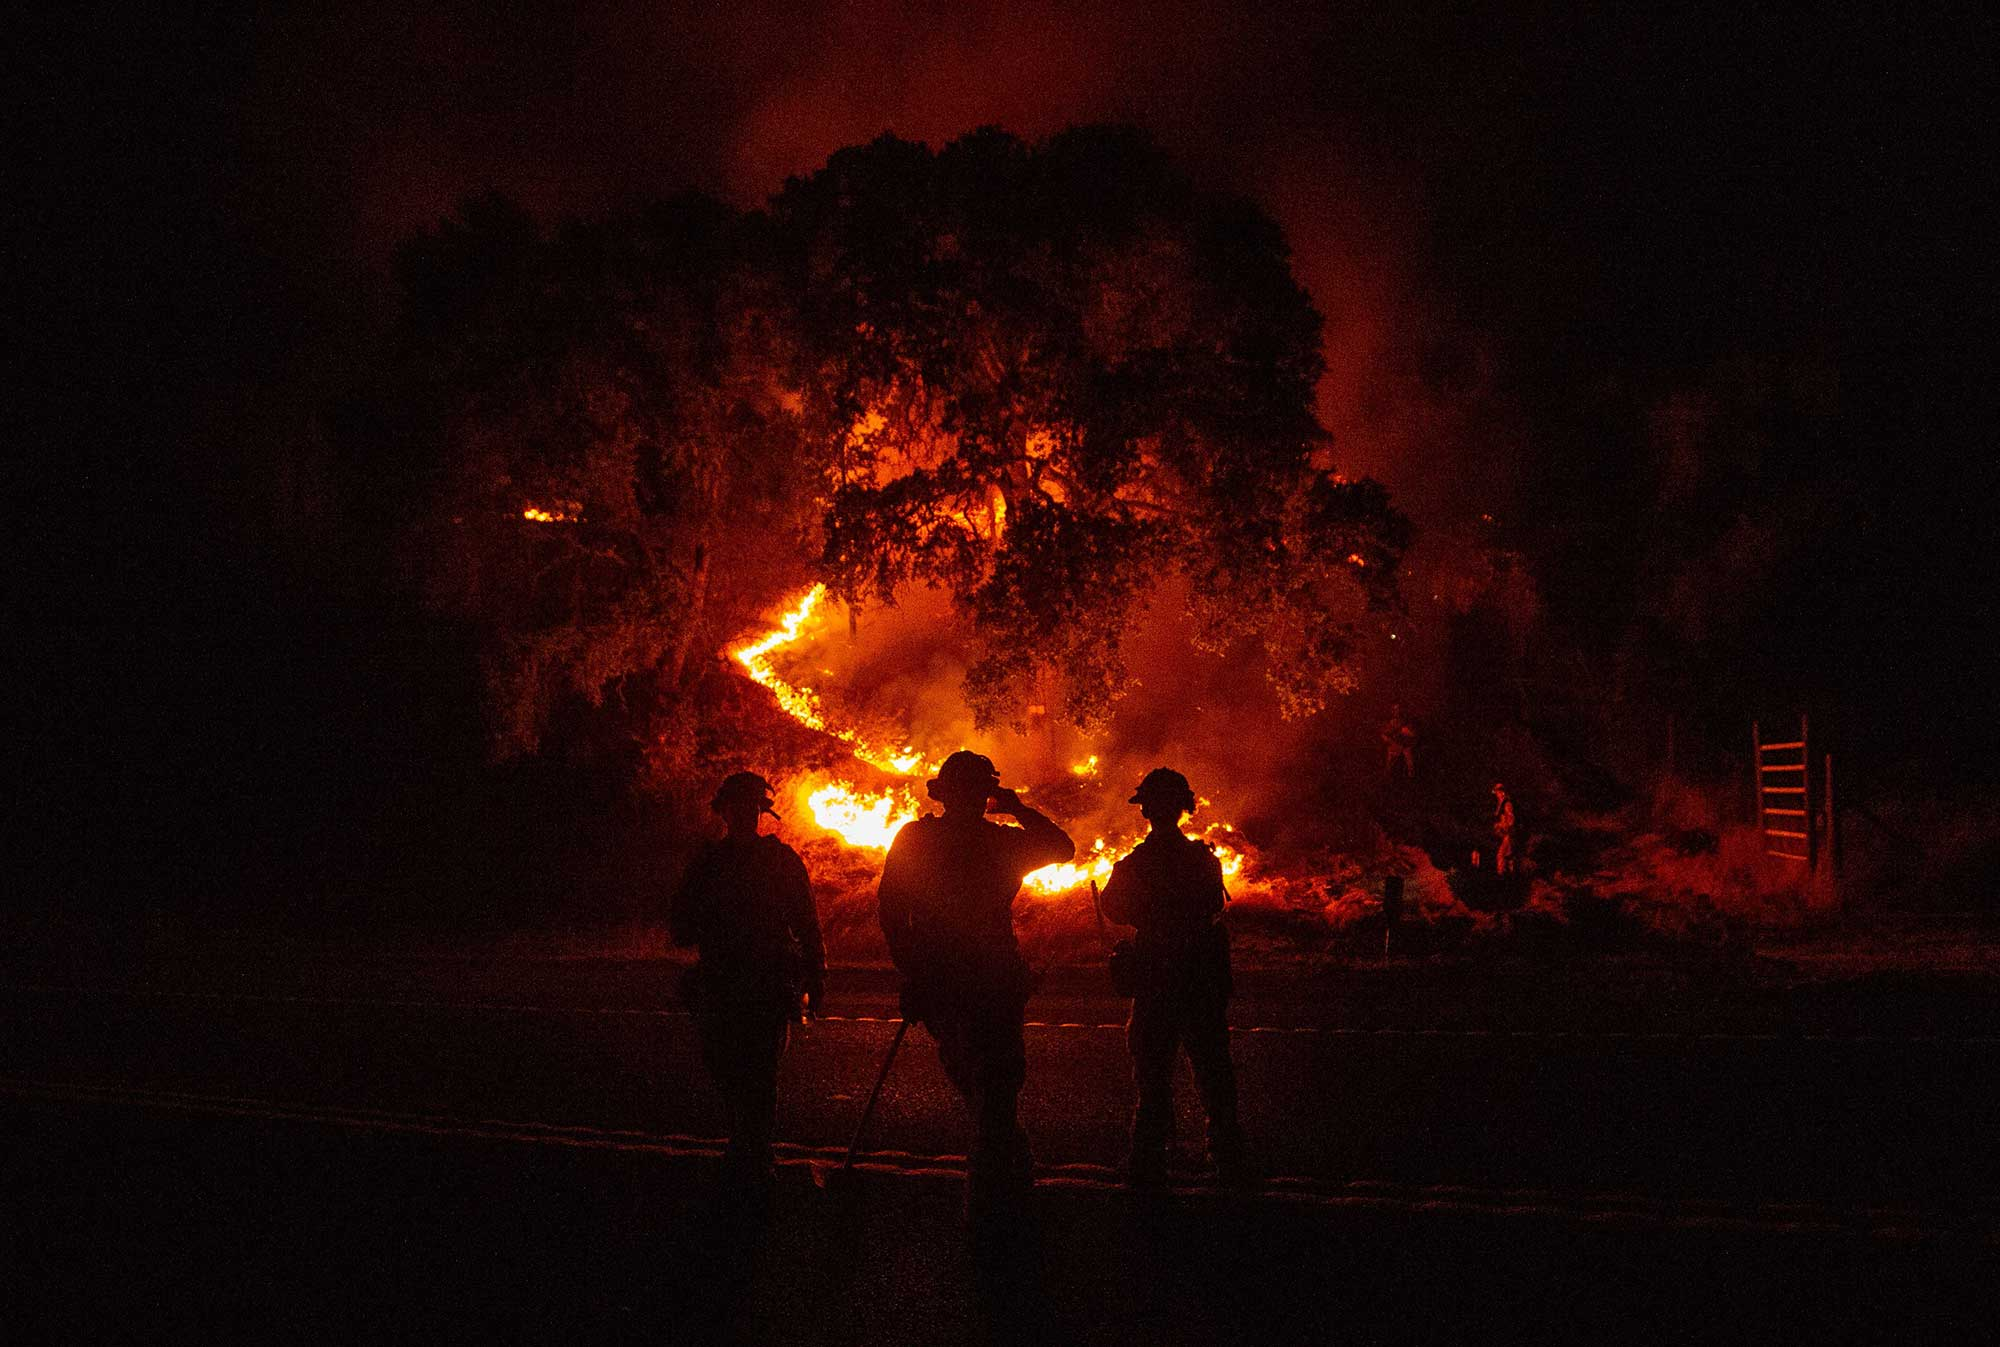 "<div class=""meta image-caption""><div class=""origin-logo origin-image none""><span>none</span></div><span class=""caption-text"">Firefighters watch a back burn during the Mendocino Complex fire in Upper Lake, California on July 31, 2018. (JOSH EDELSON/AFP/Getty Images)</span></div>"